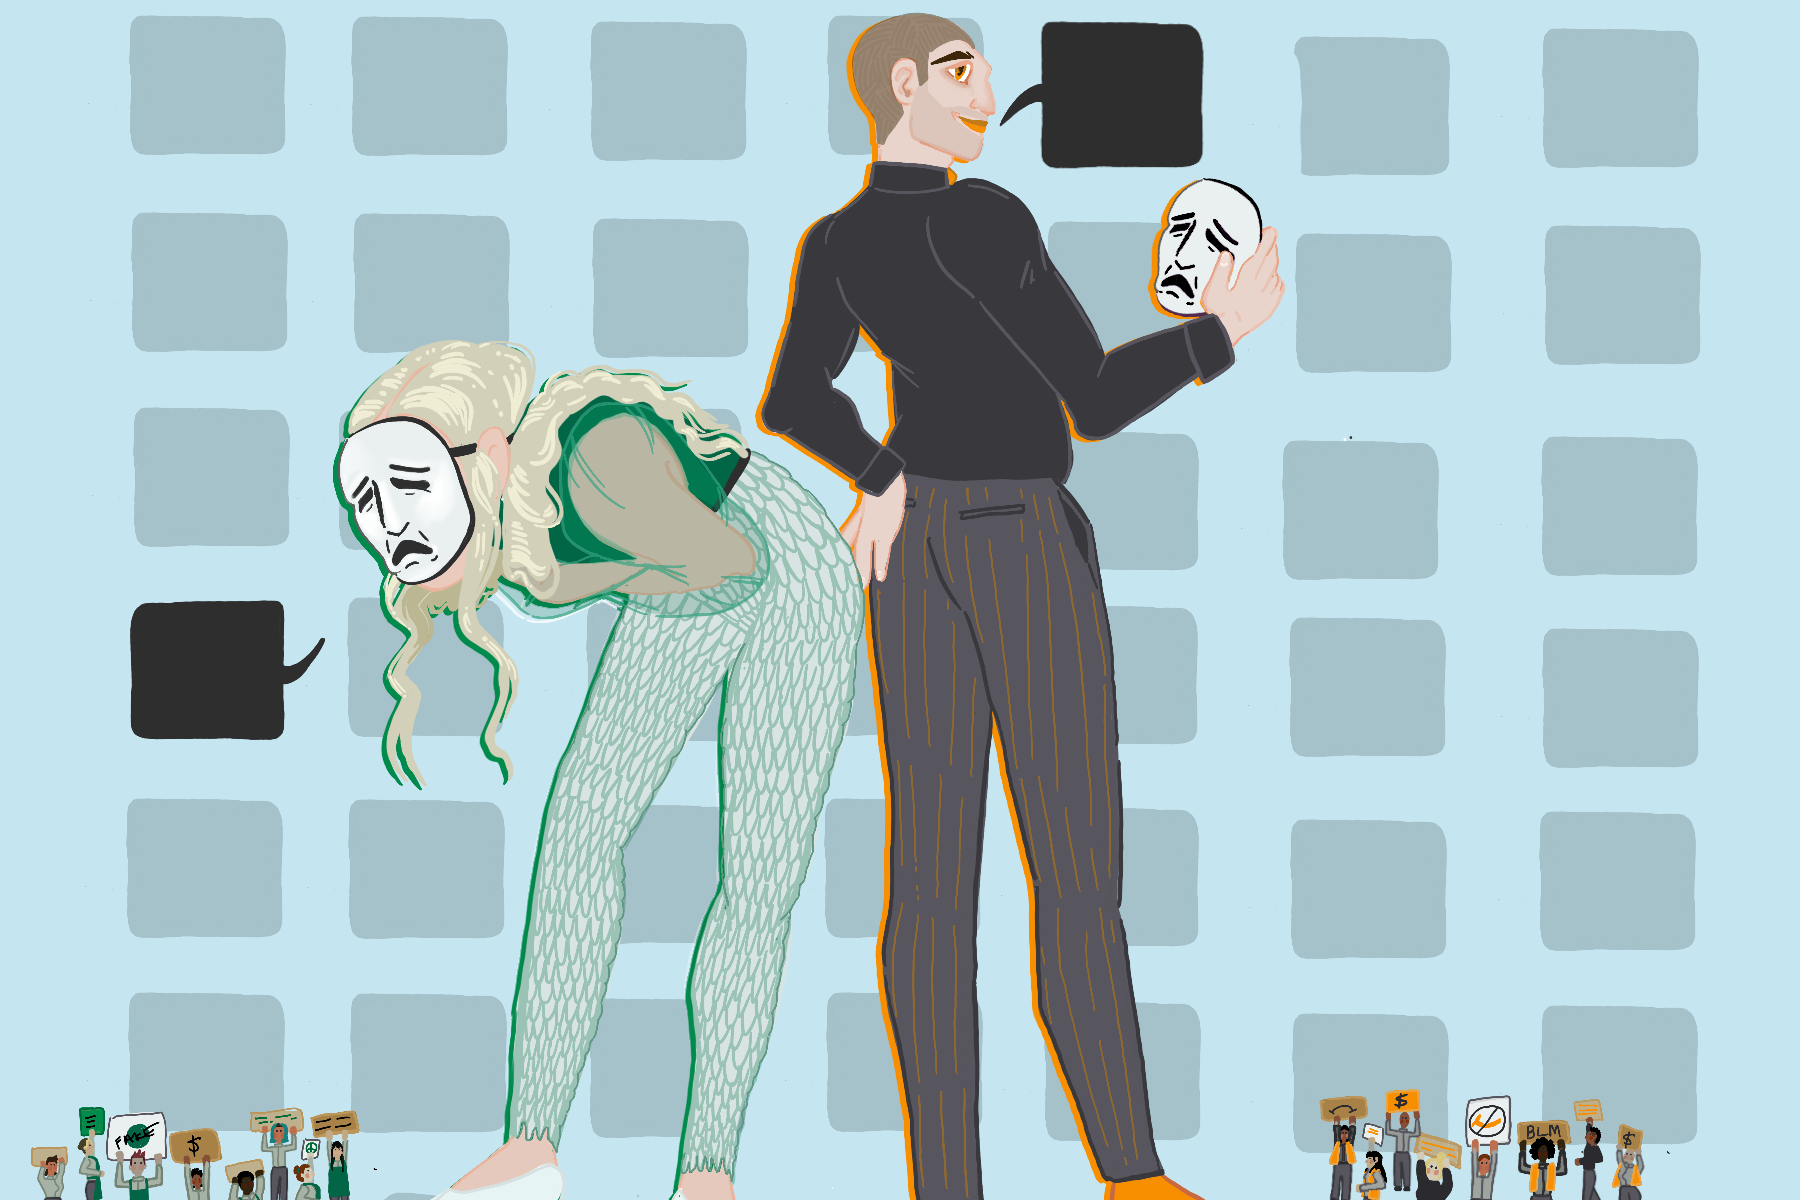 In an article about performative activism, an illustration of a man and a woman with masks and blacked-out speech bubbles